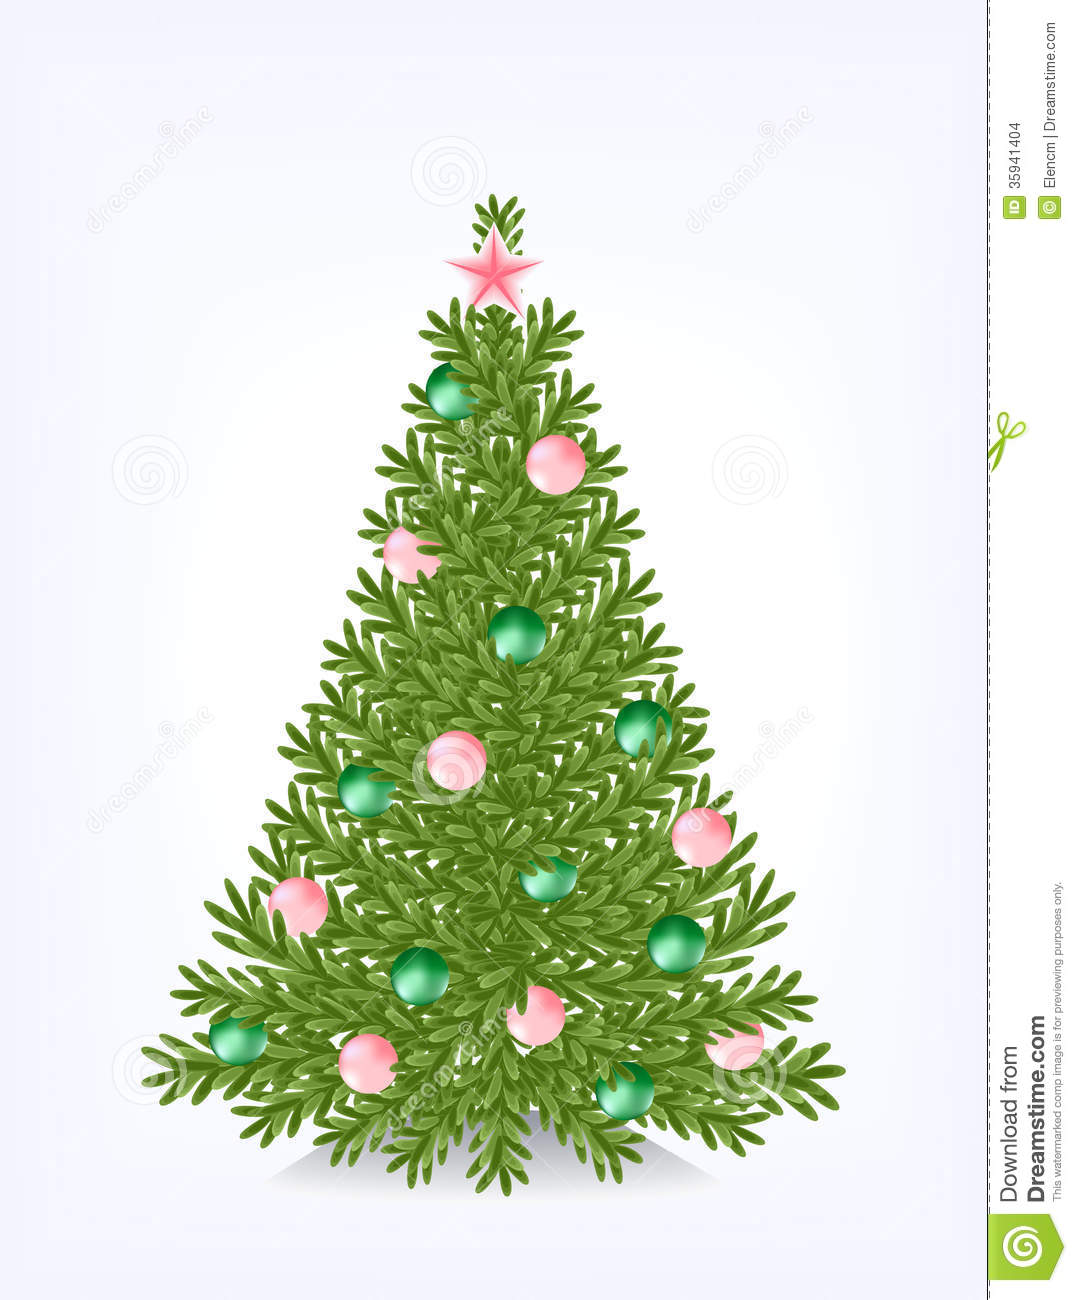 Decorate Christmas Tree With Beads: Bushy Christmas Tree Stock Images